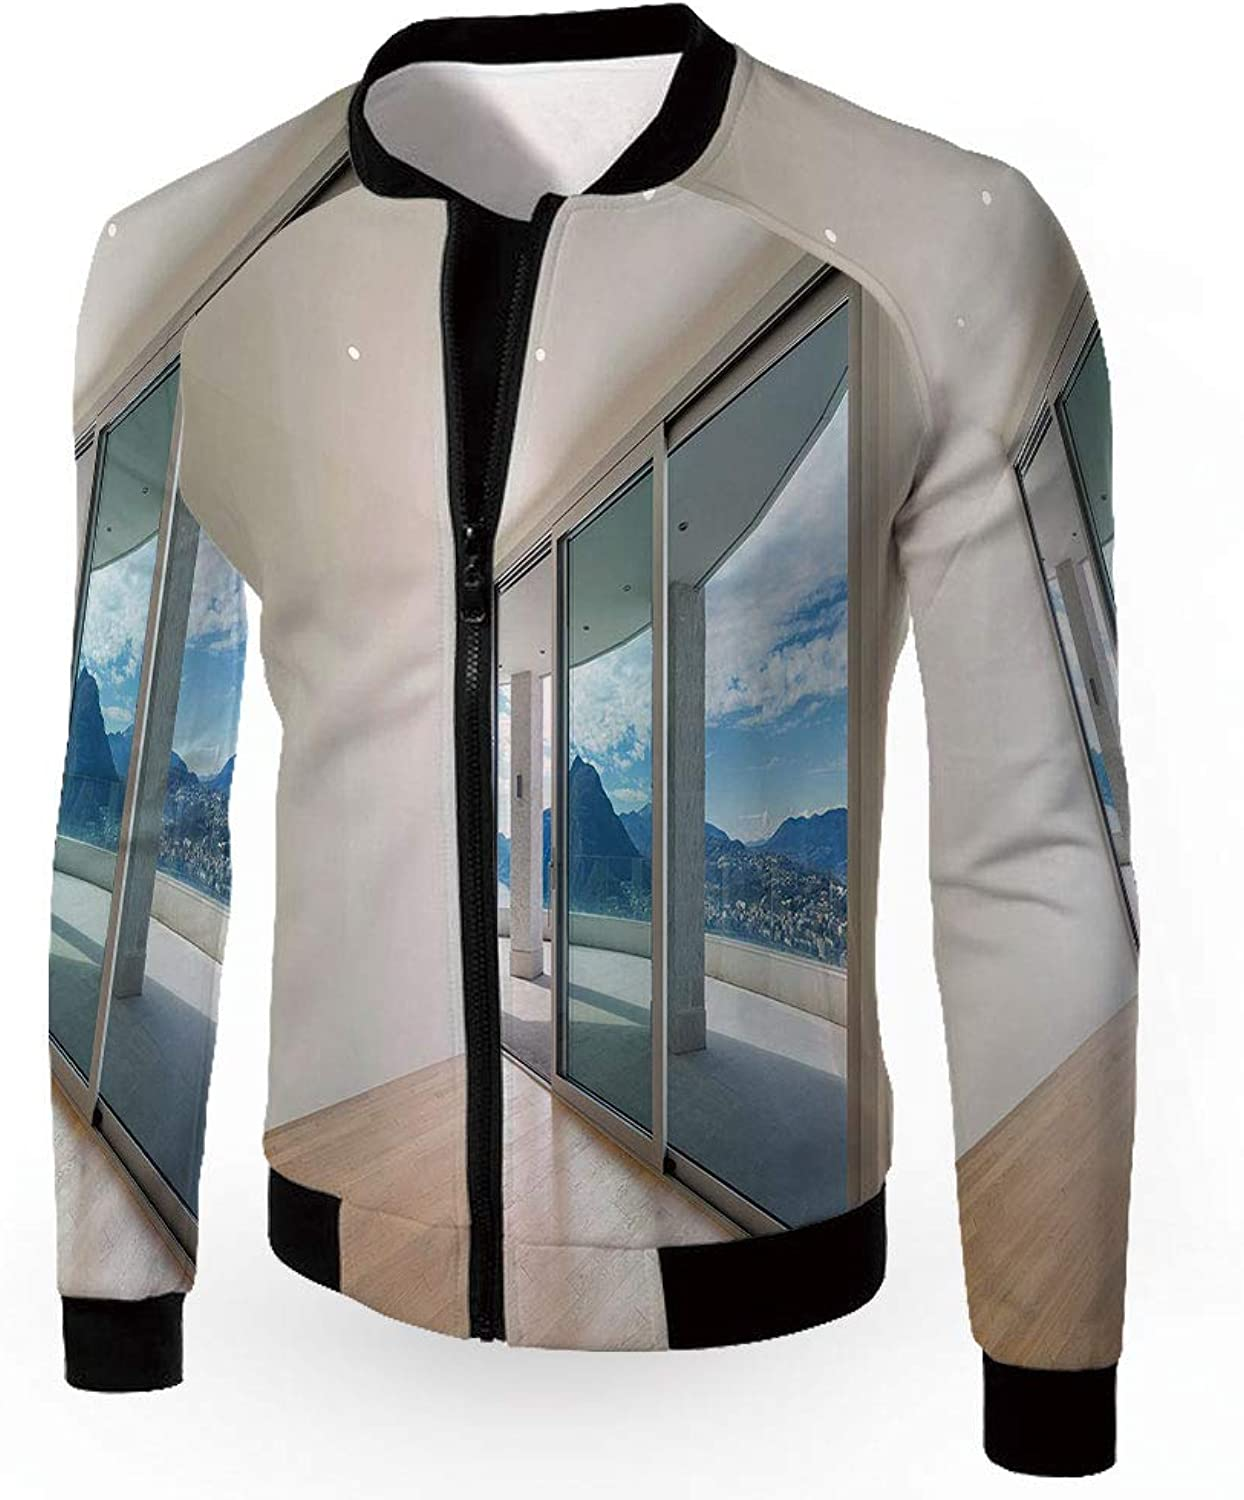 IPrint Bomber Jacket,Modern Decor,Military Patch Light Weight Bomber Jacket,Home Patio